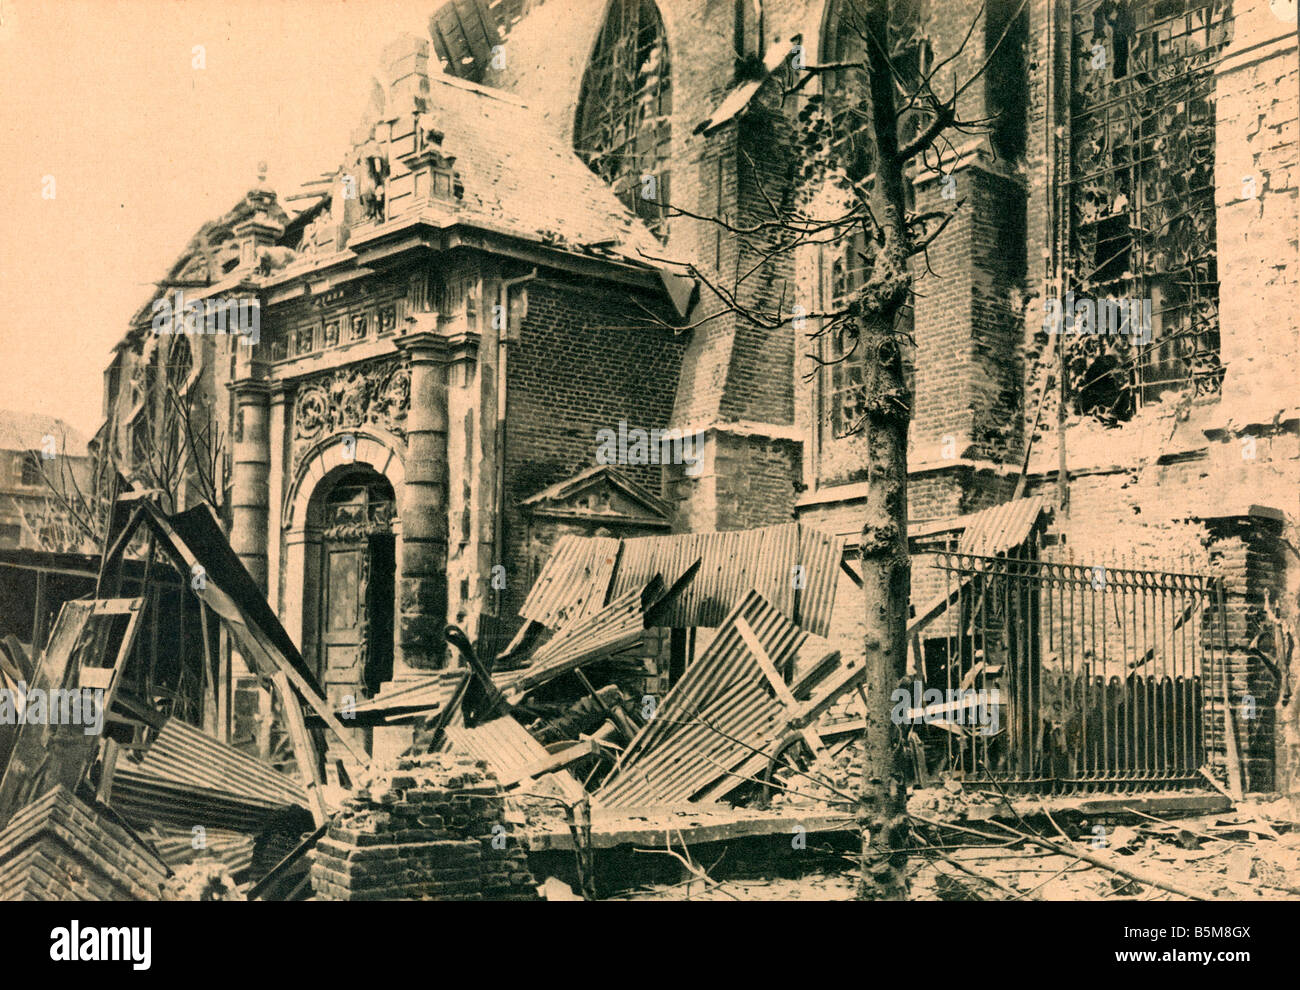 2 G55 F1 1918 17 WW1 Bailleul Cathedral History World War One France The Cathedrale at Bailleul under English fire - Stock Image